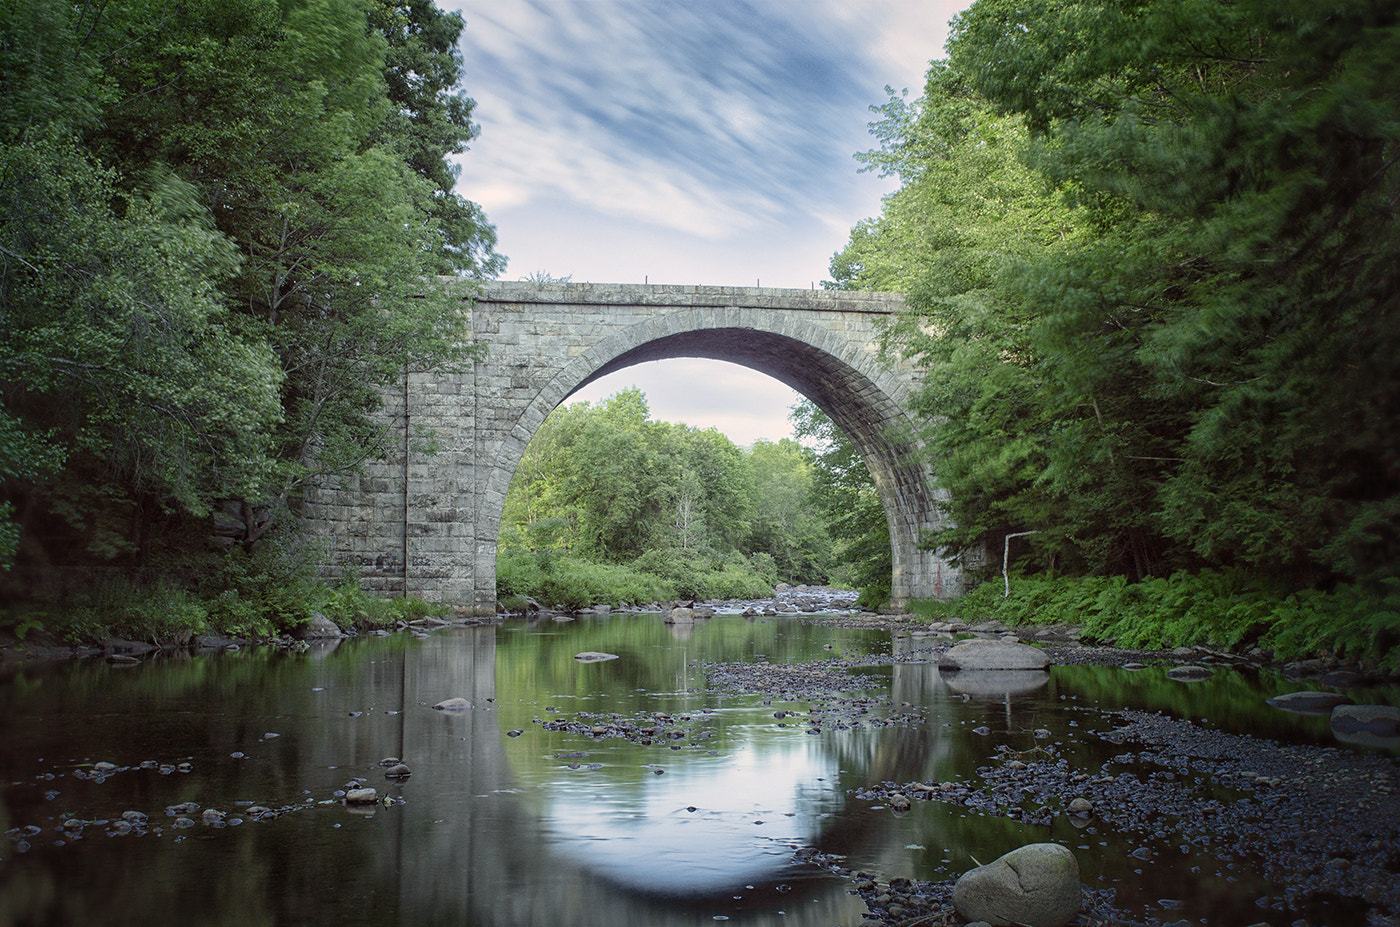 Photograph Cheshire Railroad Stone Arch Bridge by Jessica Hendelman on 500px